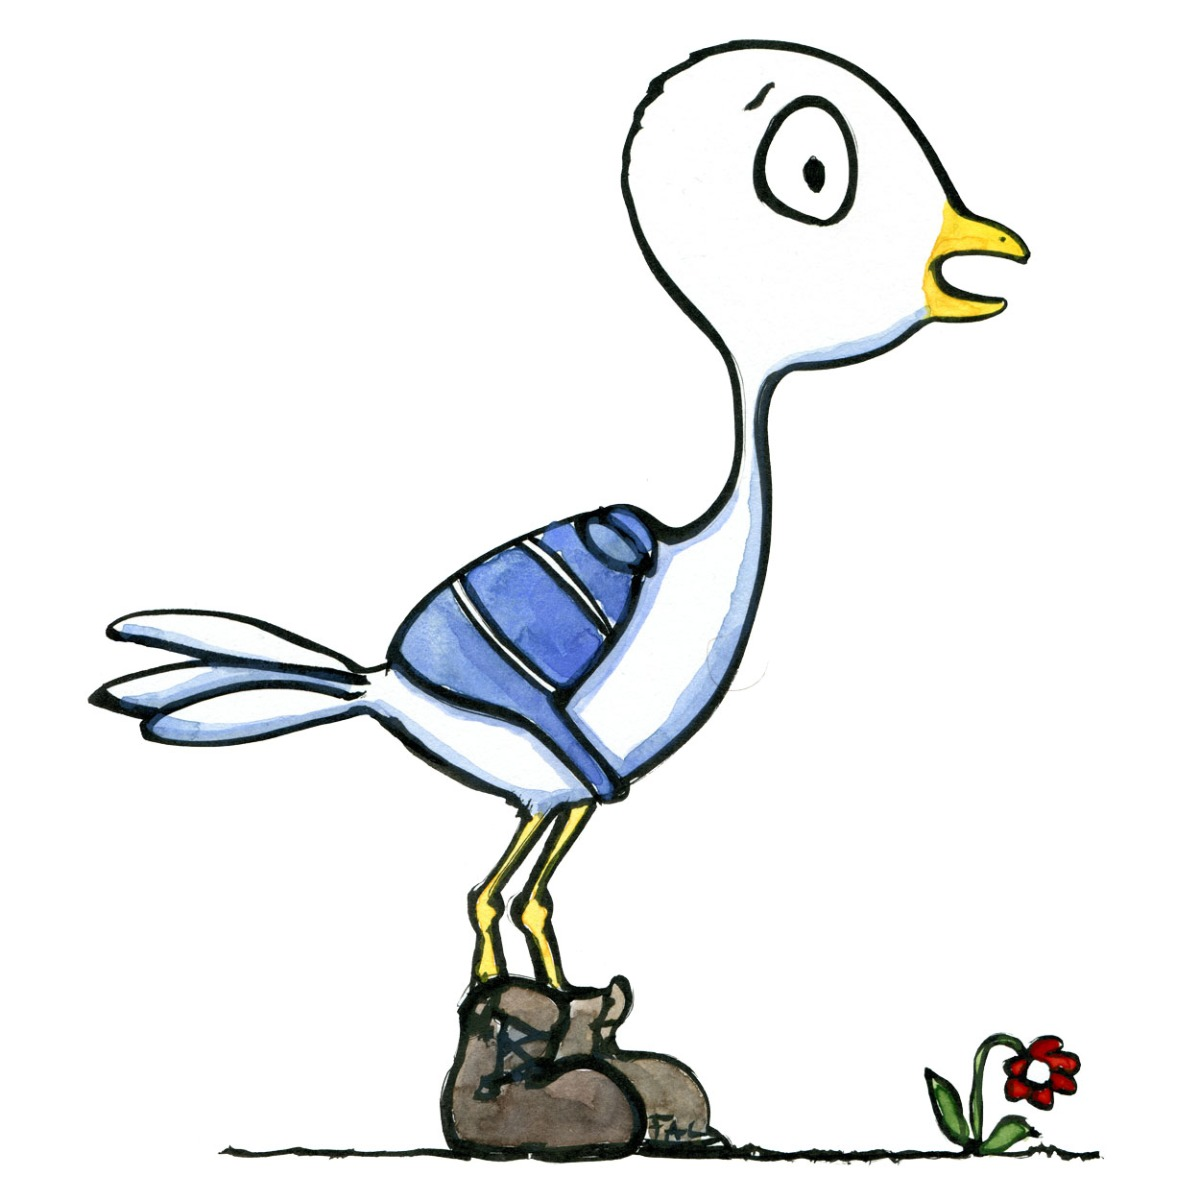 Illustration of a bird with a backpack and boots, drawing by Frits Ahlefeldt